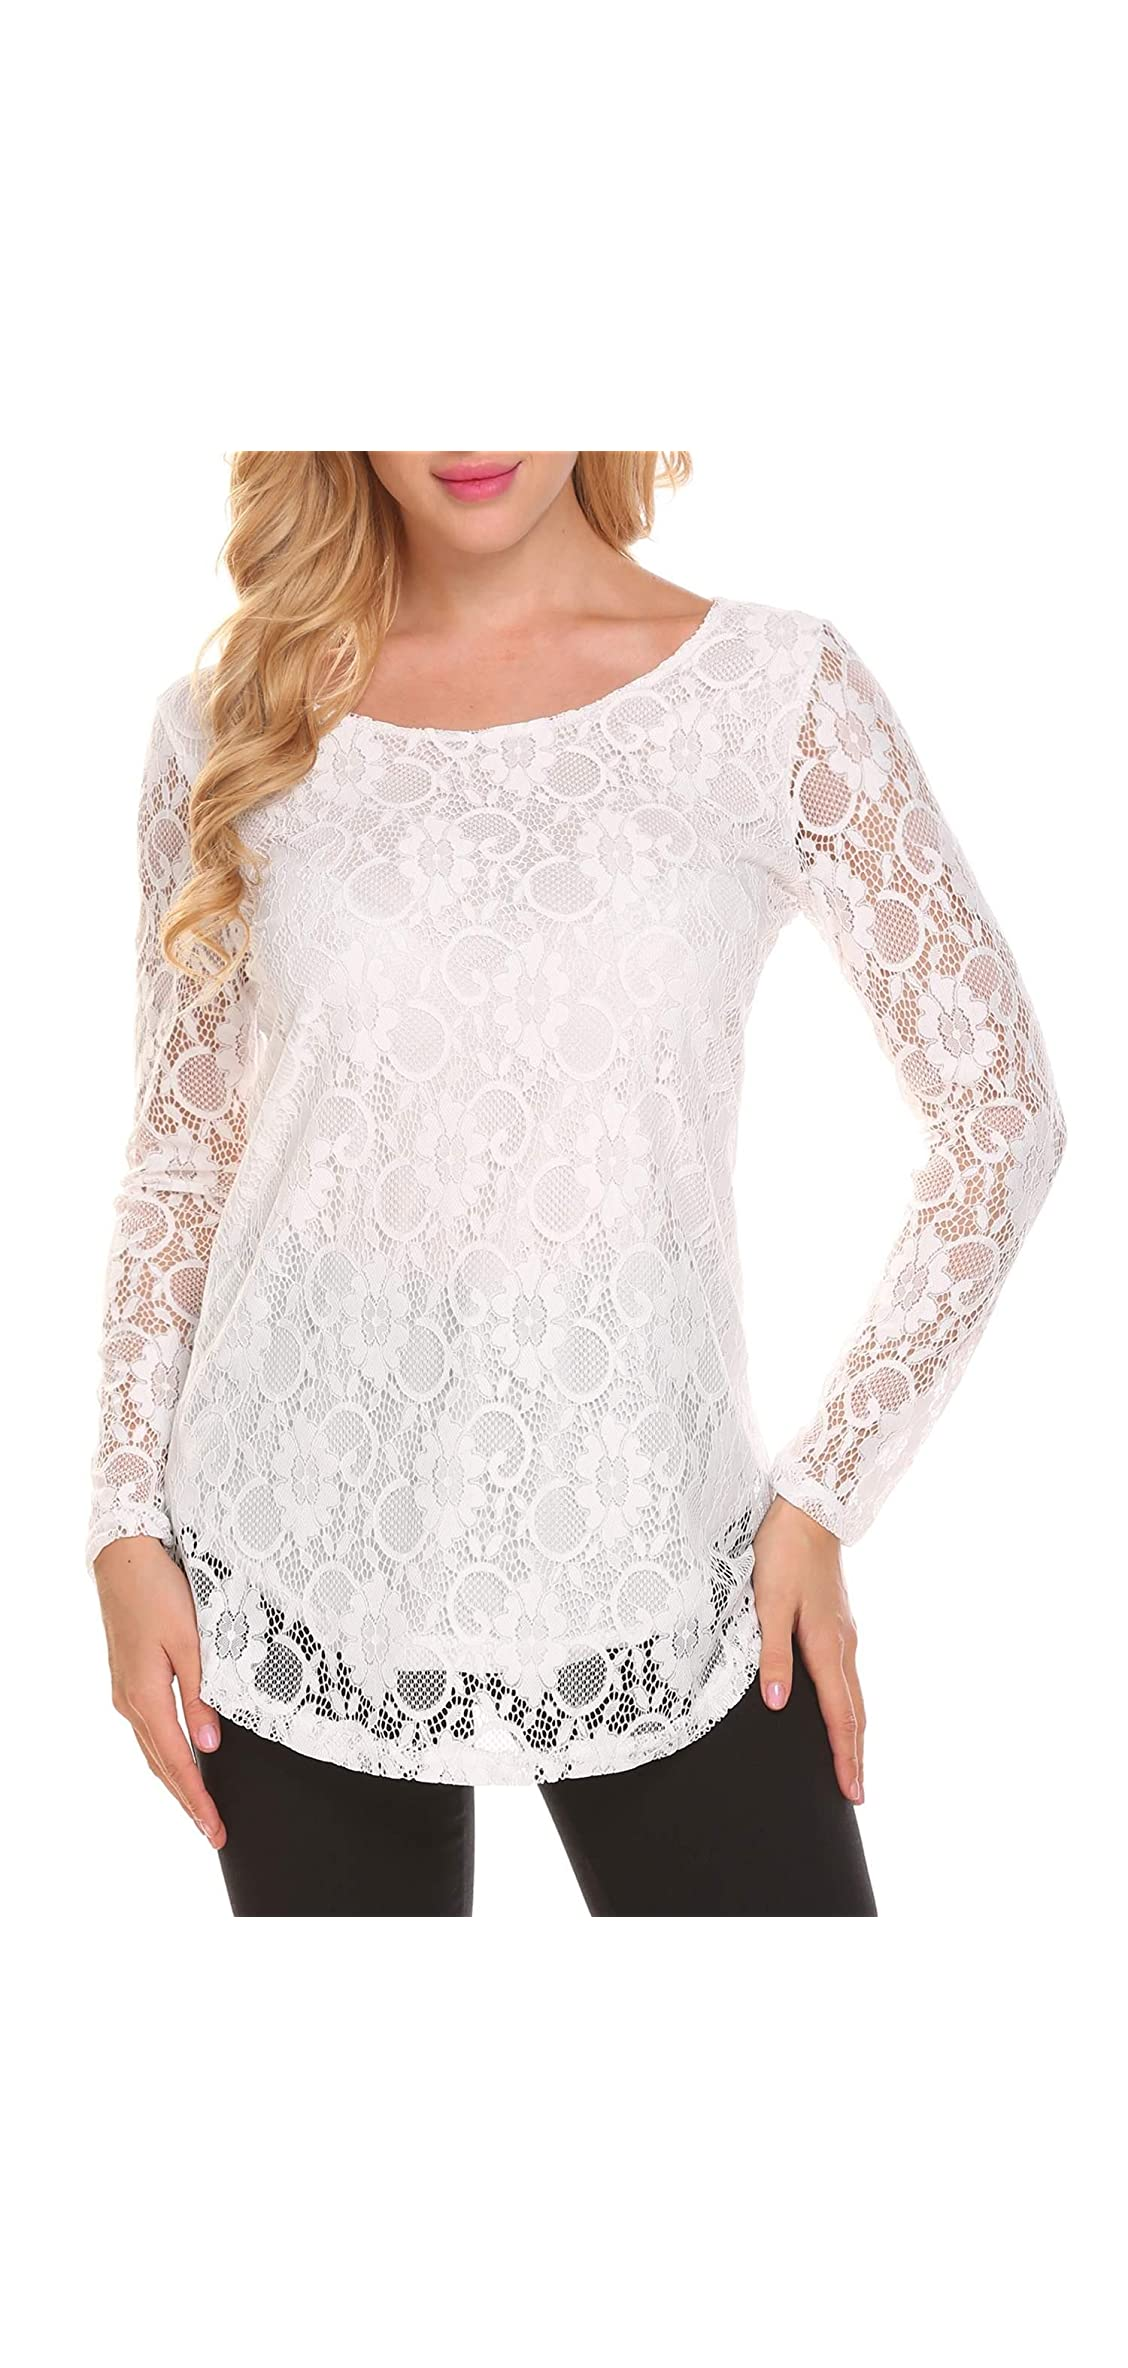 Lace Blouse Women's Long Sleeve Casual Loose Boatneck